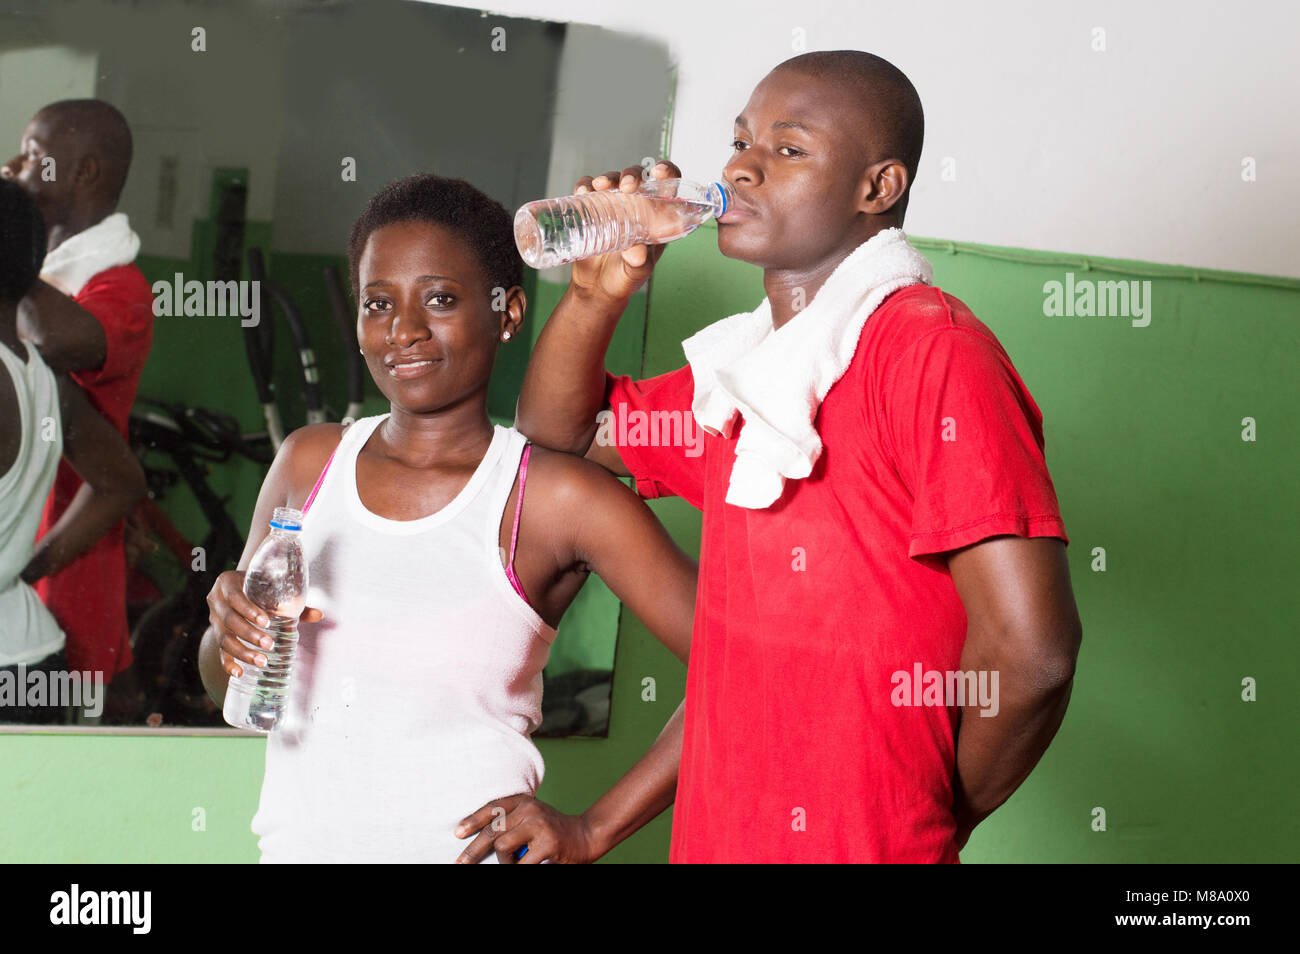 Young woman and her coach drink water from the gym. - Stock Image